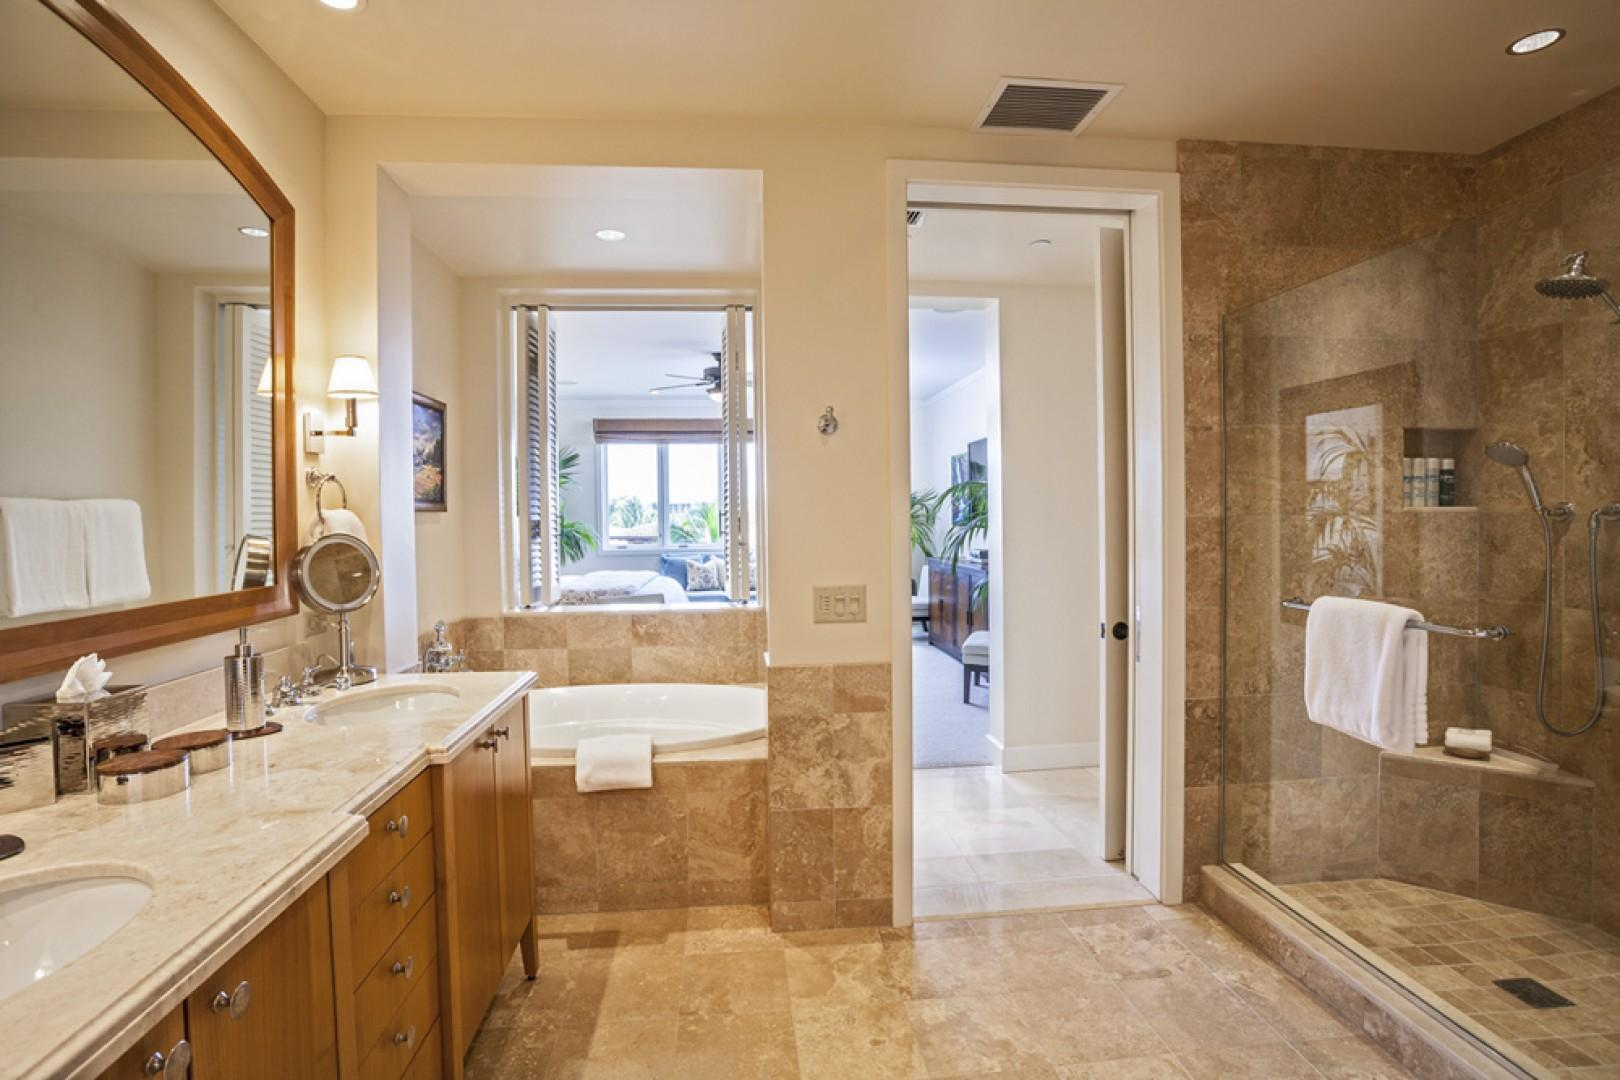 En suite master bath with deep soaking tub, glass shower, dual vanities, walk-in closet, and safe.